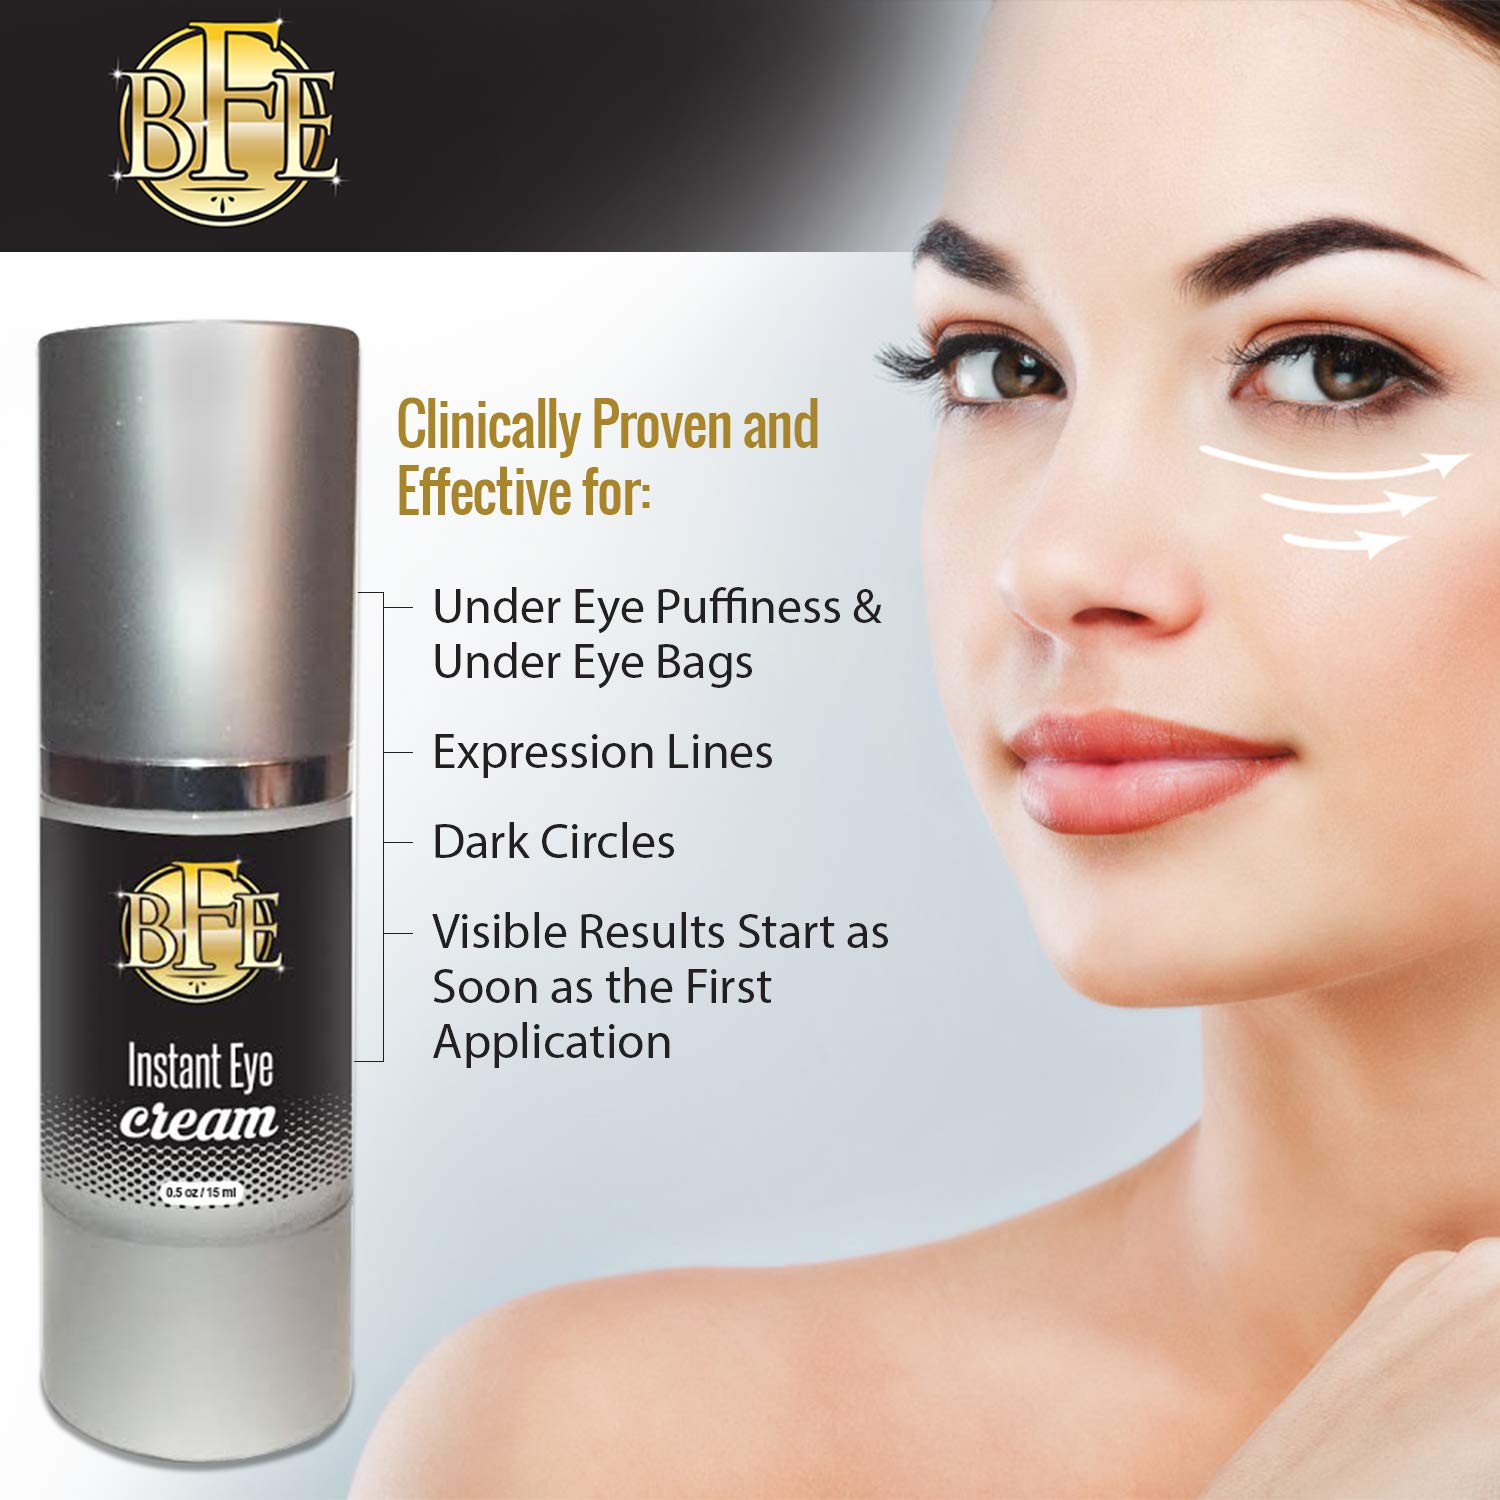 Instant Ageless Eye Cream - Dark Circles & Under Eye Puffiness Remover   Lift Technology to